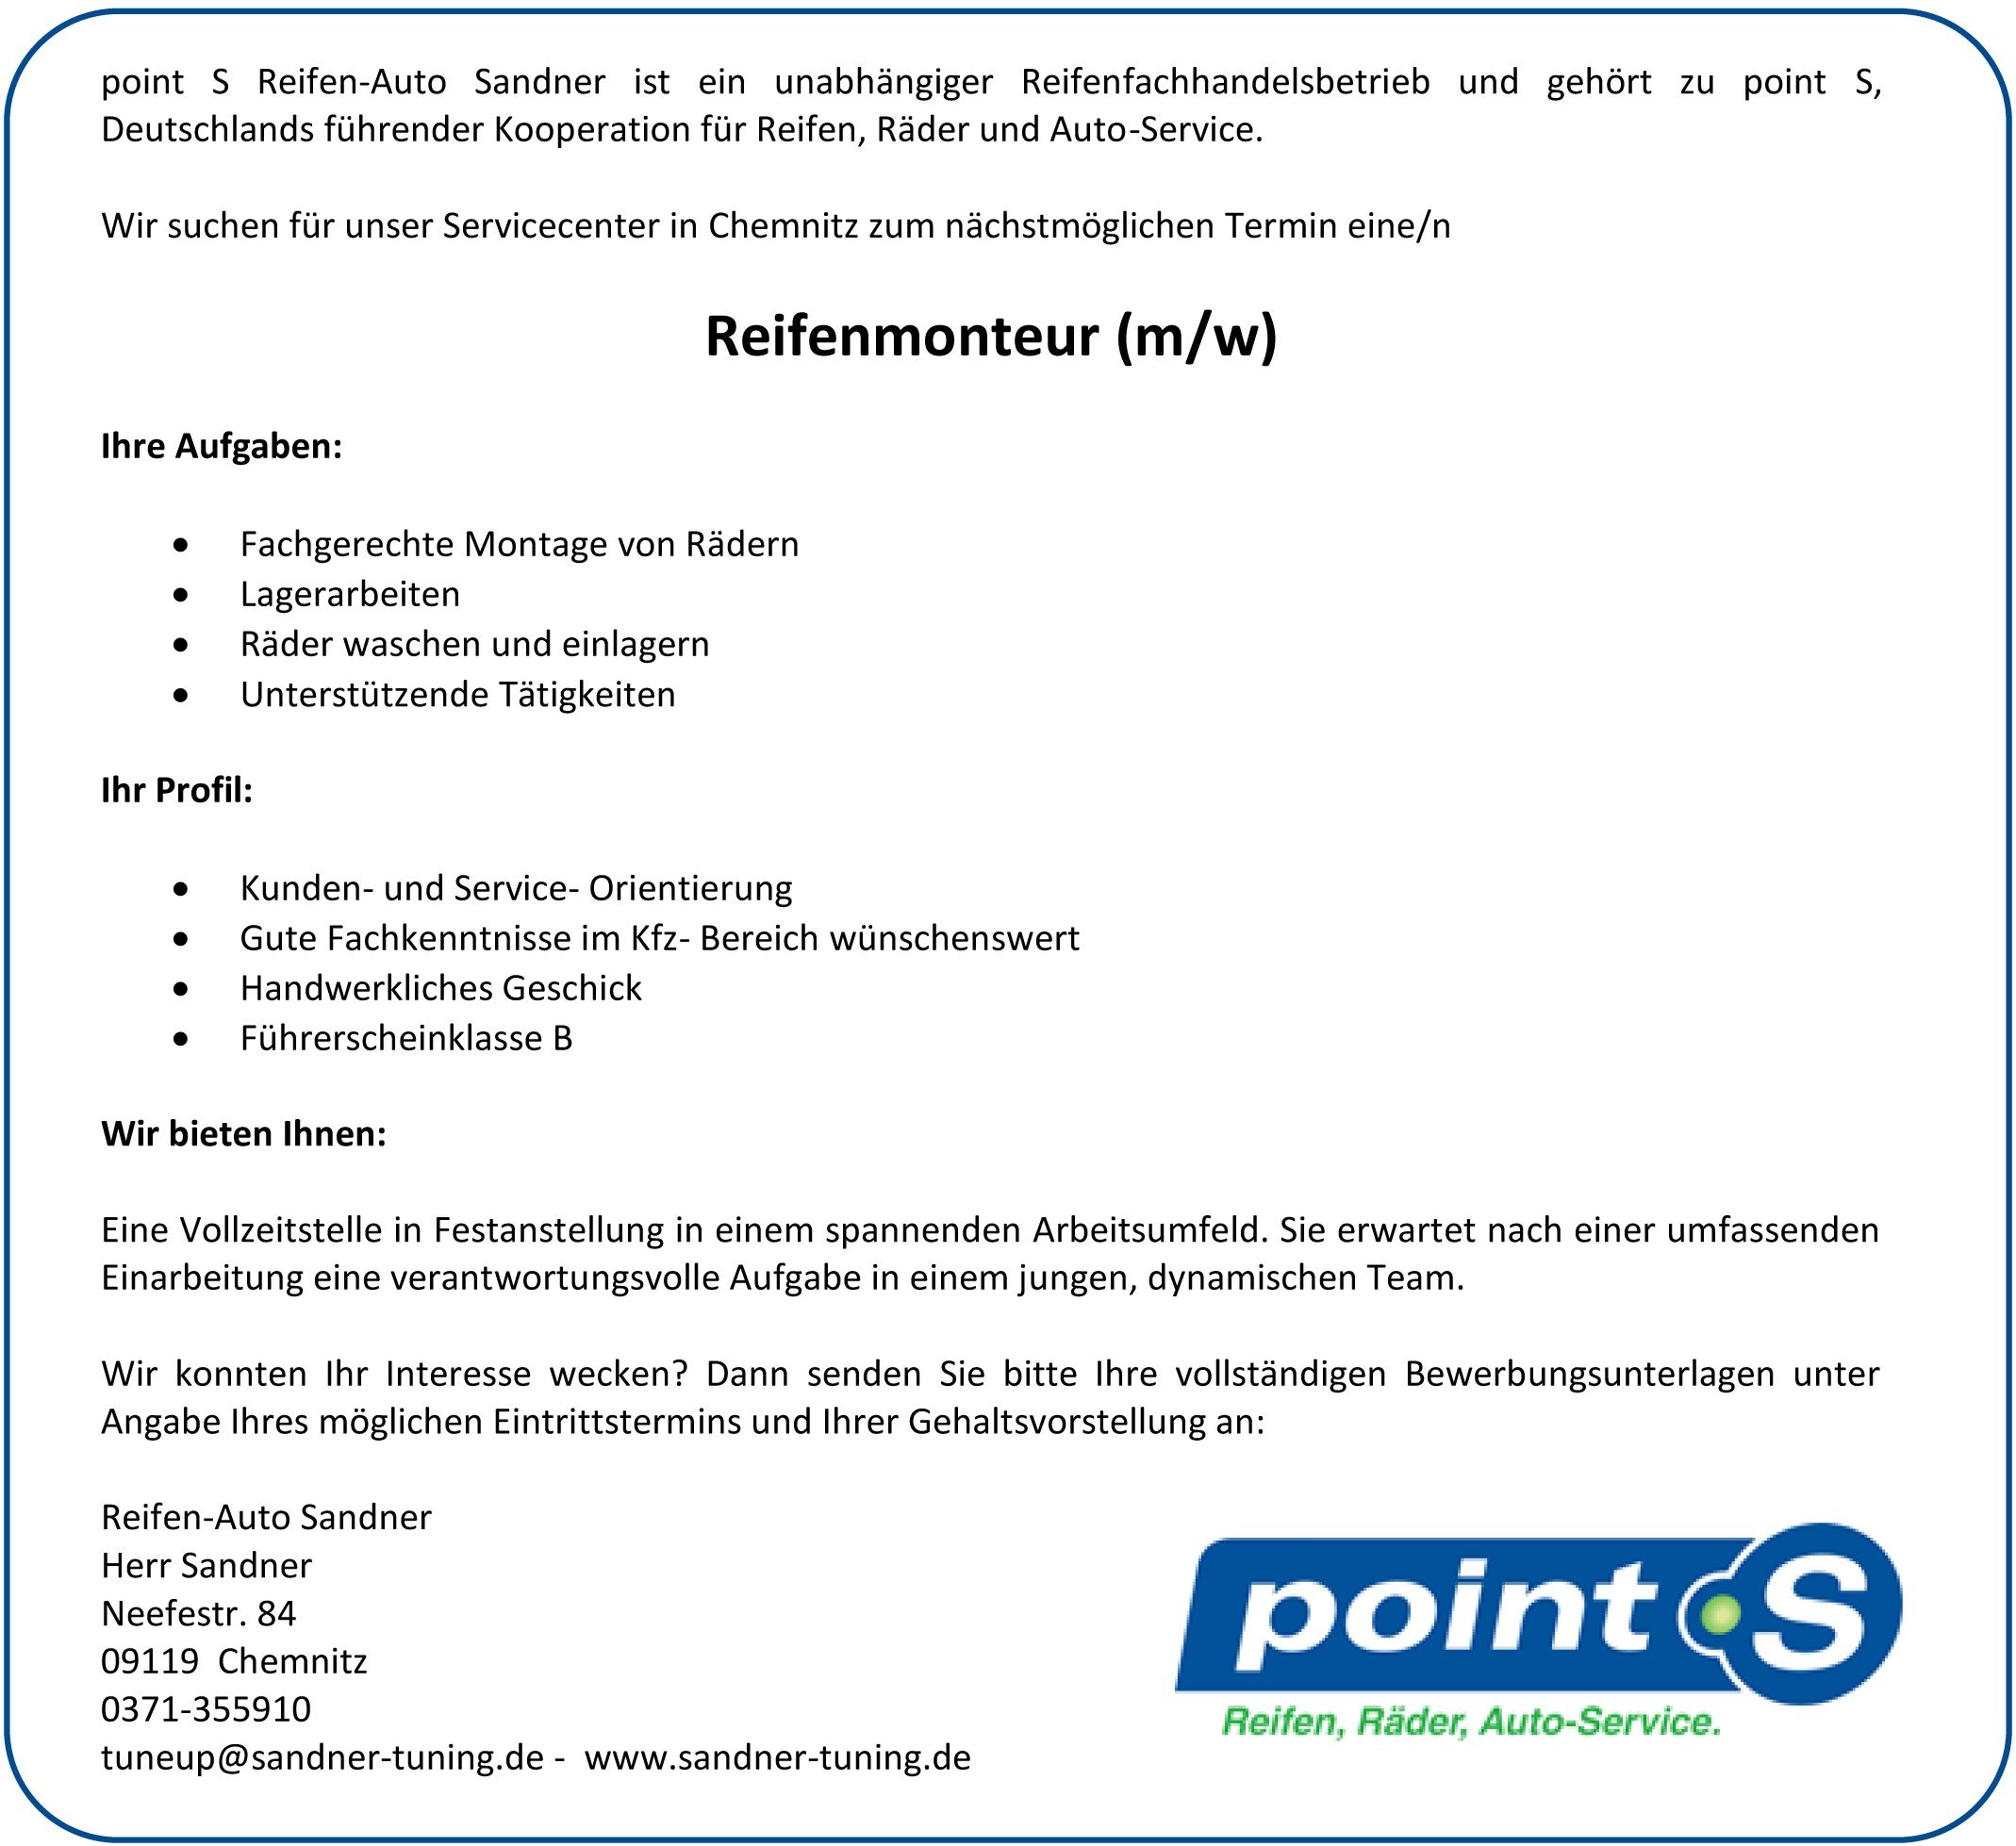 Reifenmonteur point S Sandner